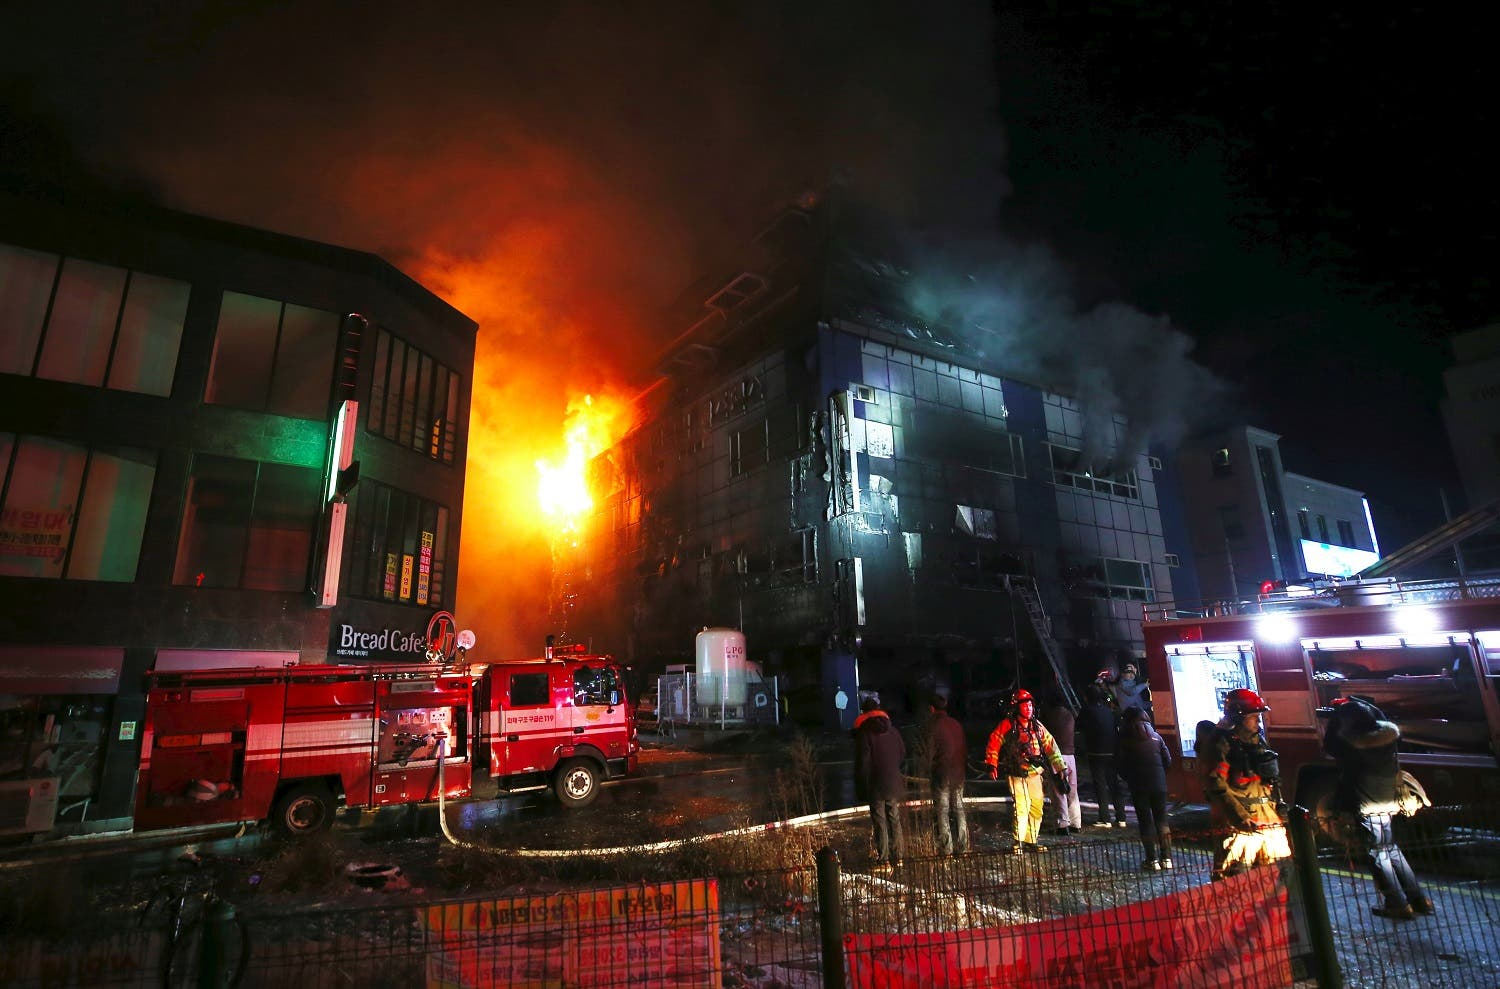 lames and smoke billow from an eight-storey building after a fire broke out in Jecheon, 120 kilometers southeast of Seoul, on December 21, 2017. (AFP)